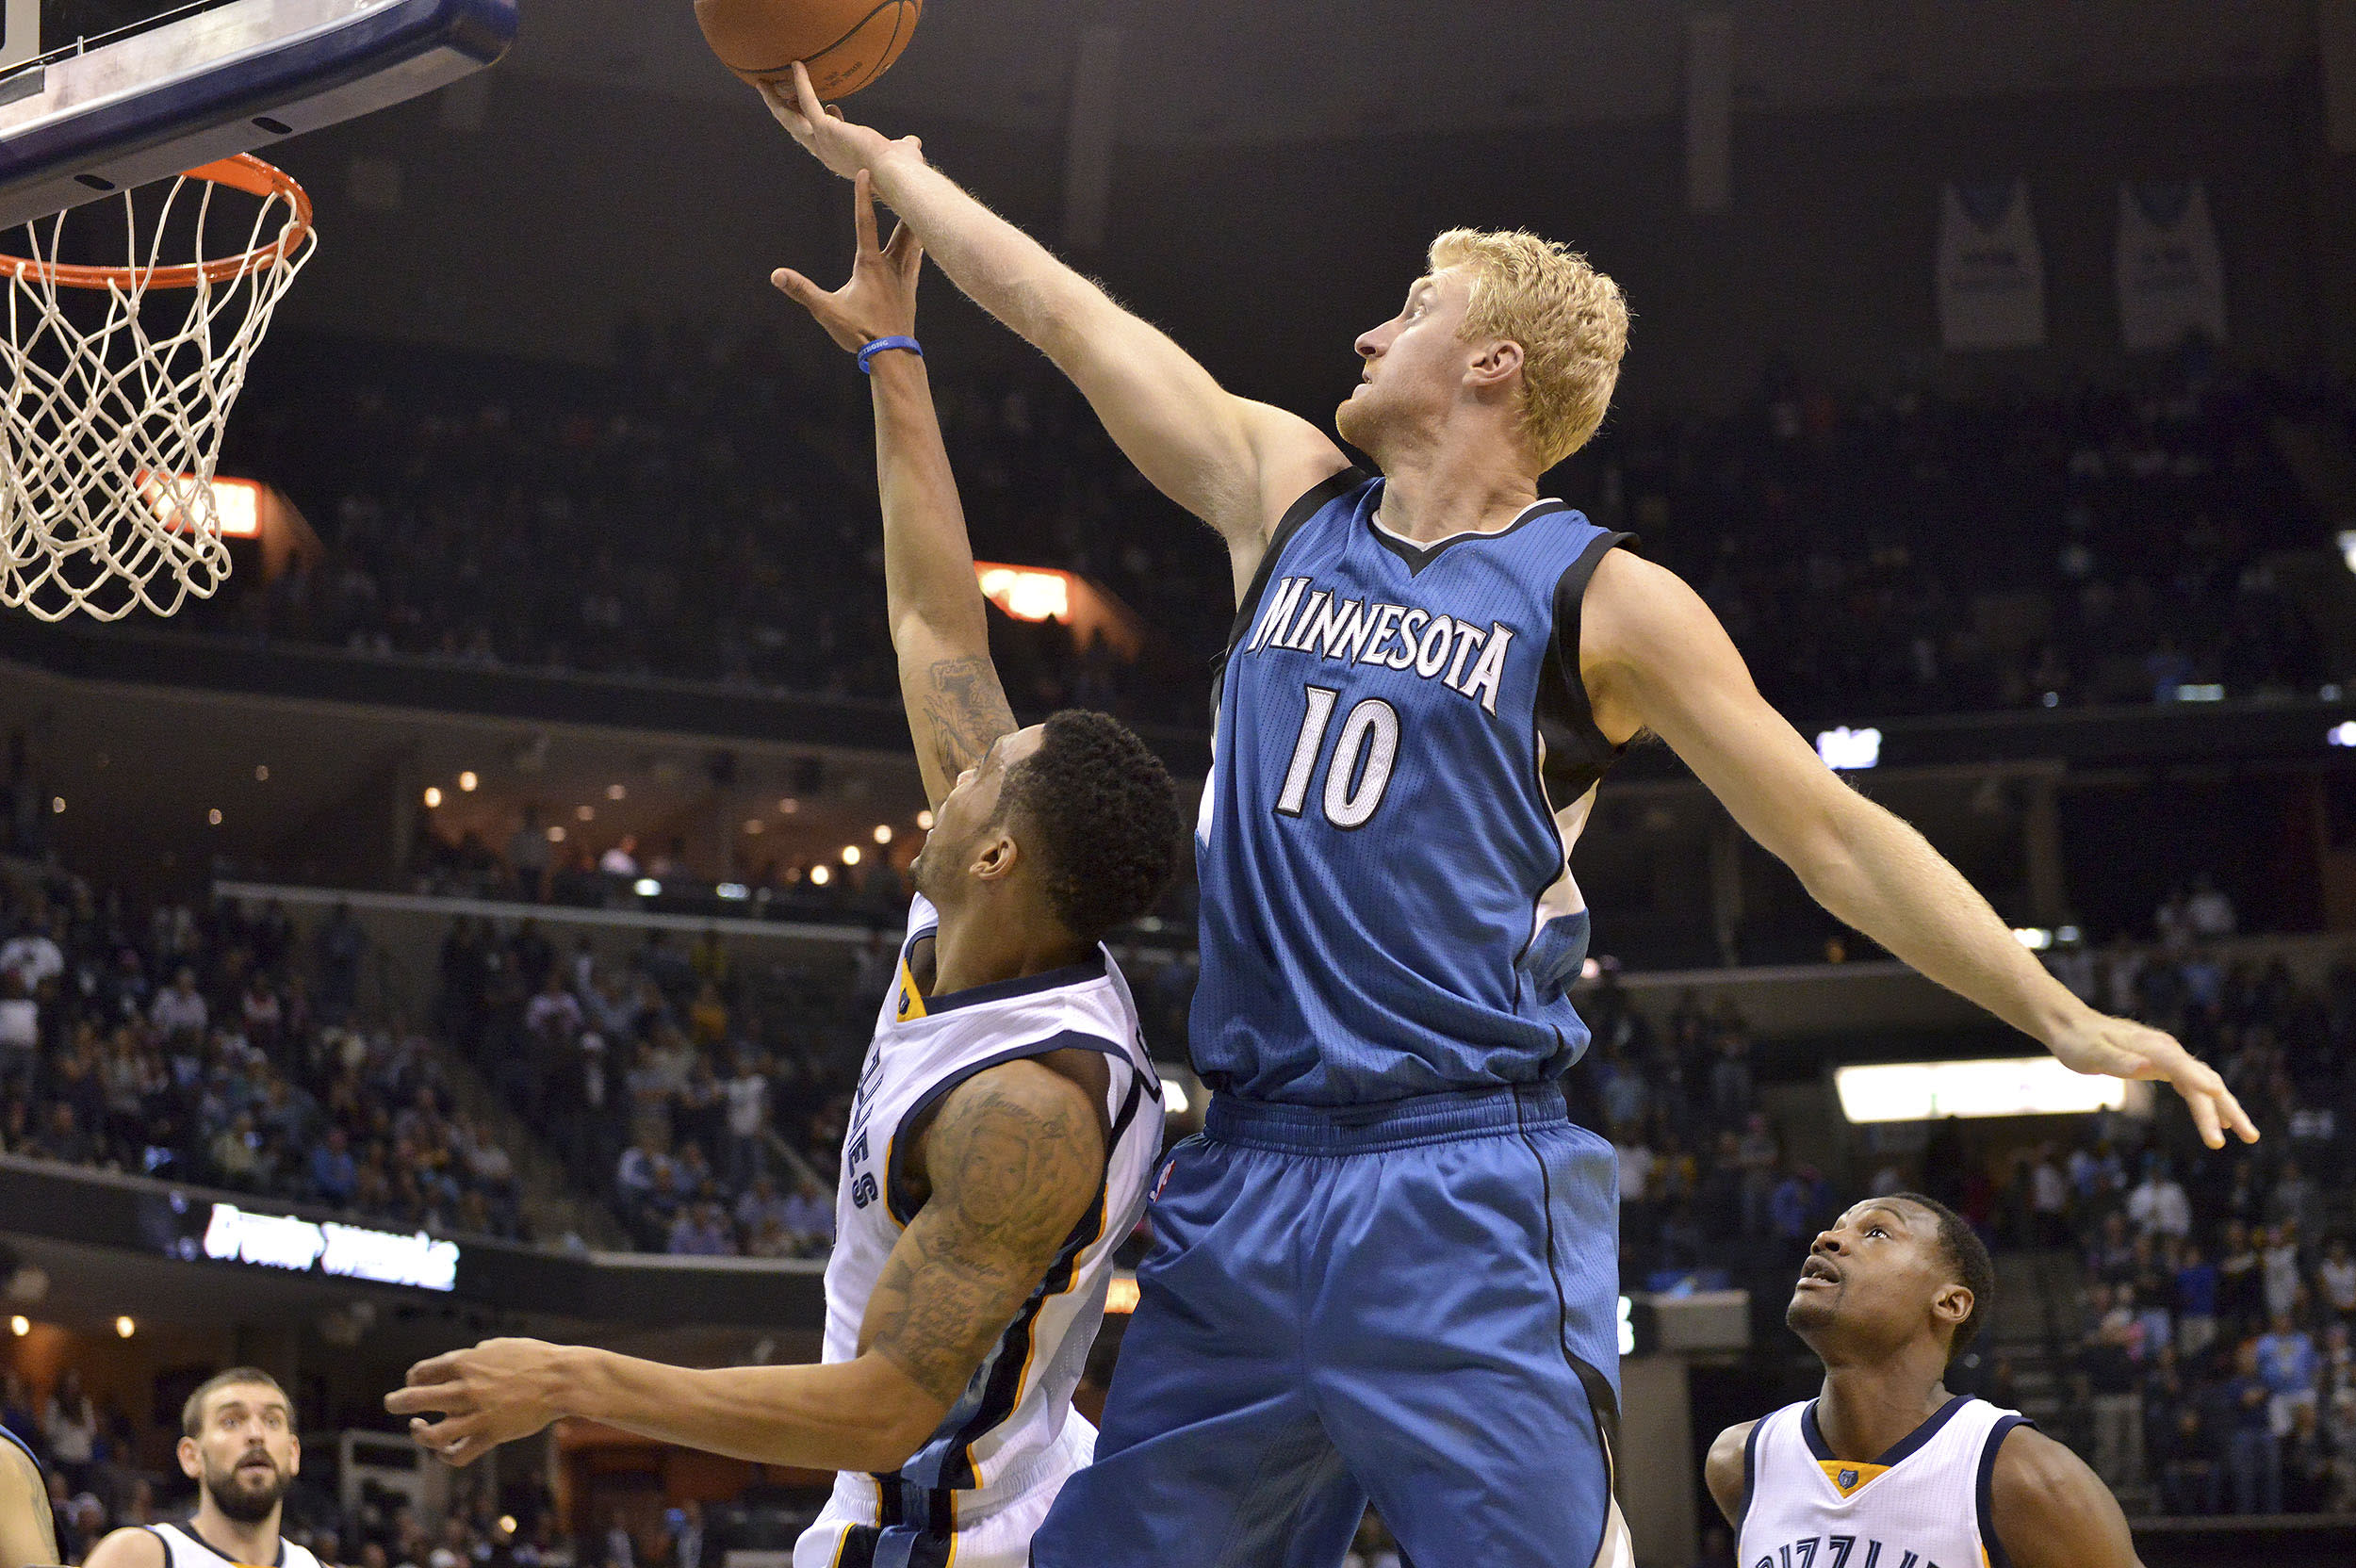 Sources: Chase Budinger picks up contract option, passes on free agency